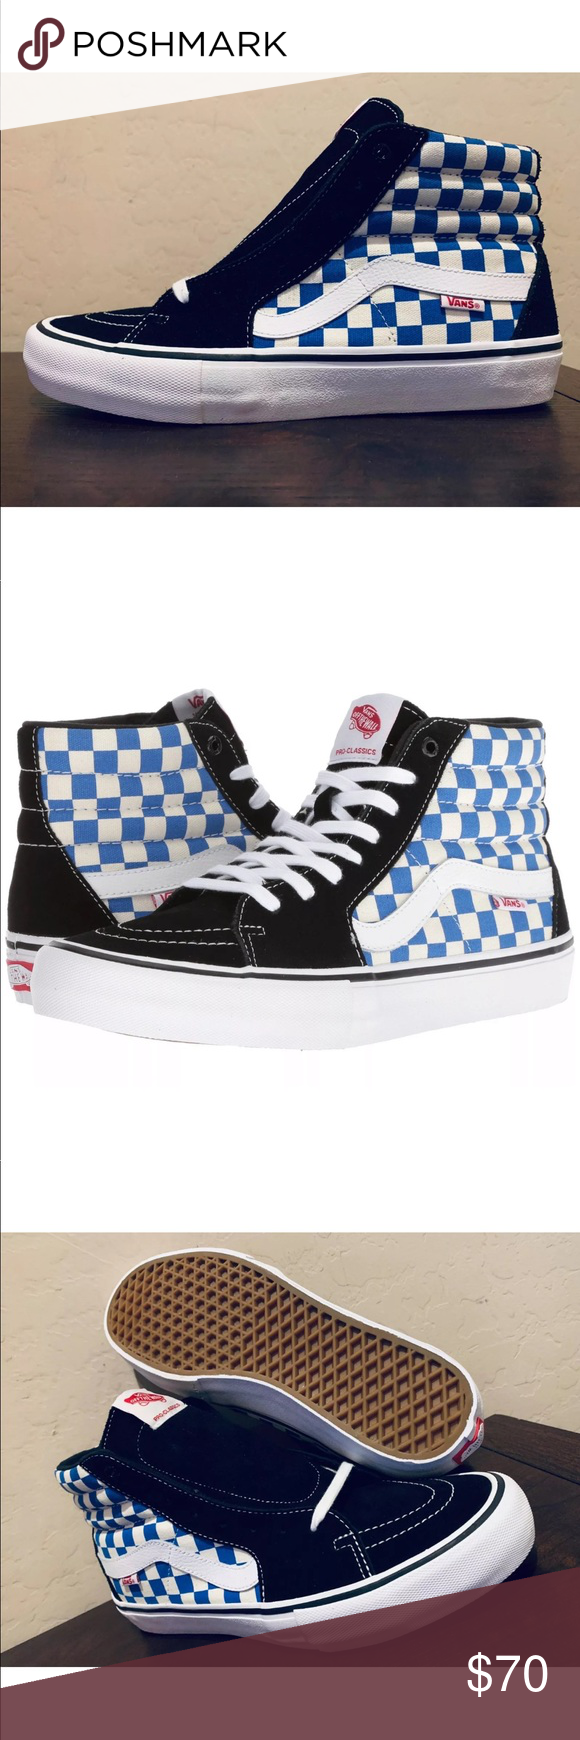 f110d13d3a Vans Men s Sk8-Hi Pro Ultracush Checkerboard NEW AUTHENTIC Vans Sk8-Hi PRO  SKATE COLOR CHECKERBOARD BLACK VICTORIA BLUE WHITE A performance update for  the ...